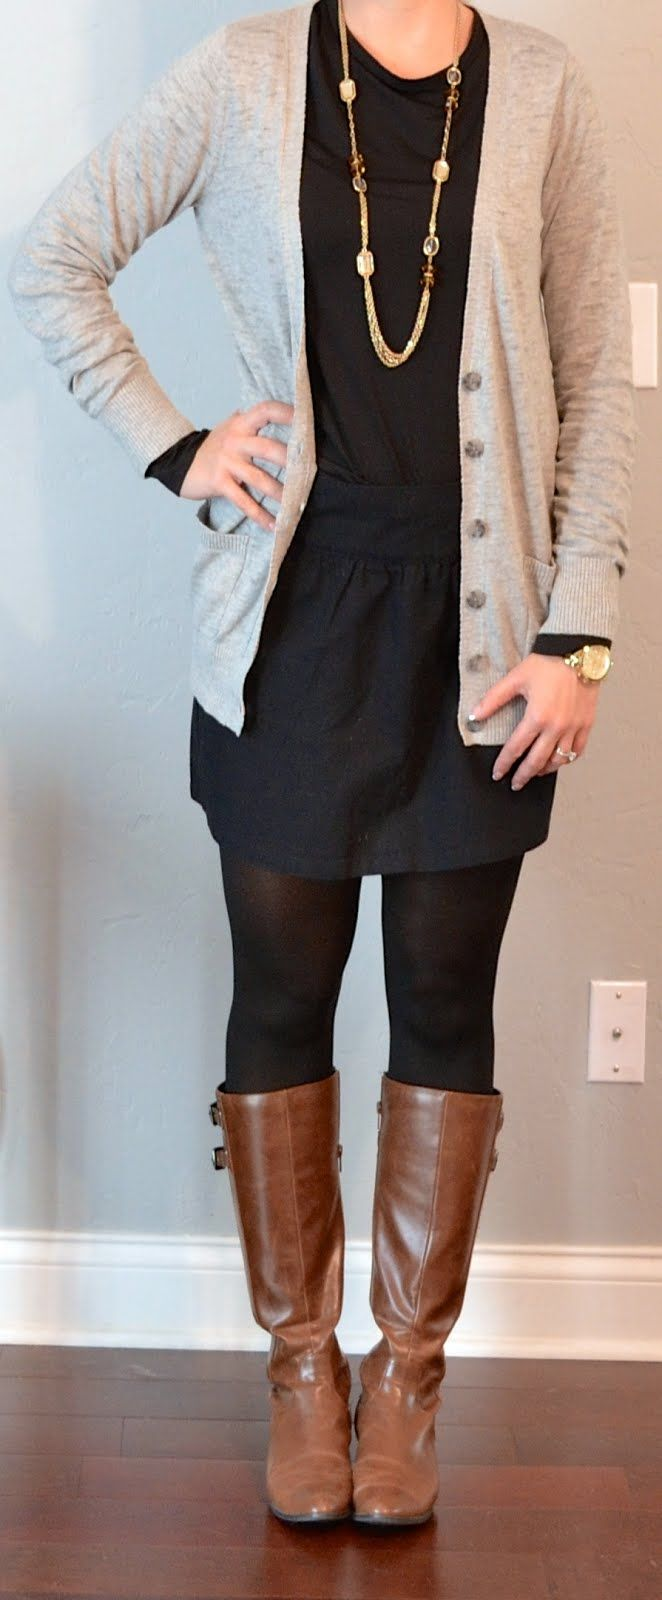 Long cardigan with dress and leggings.